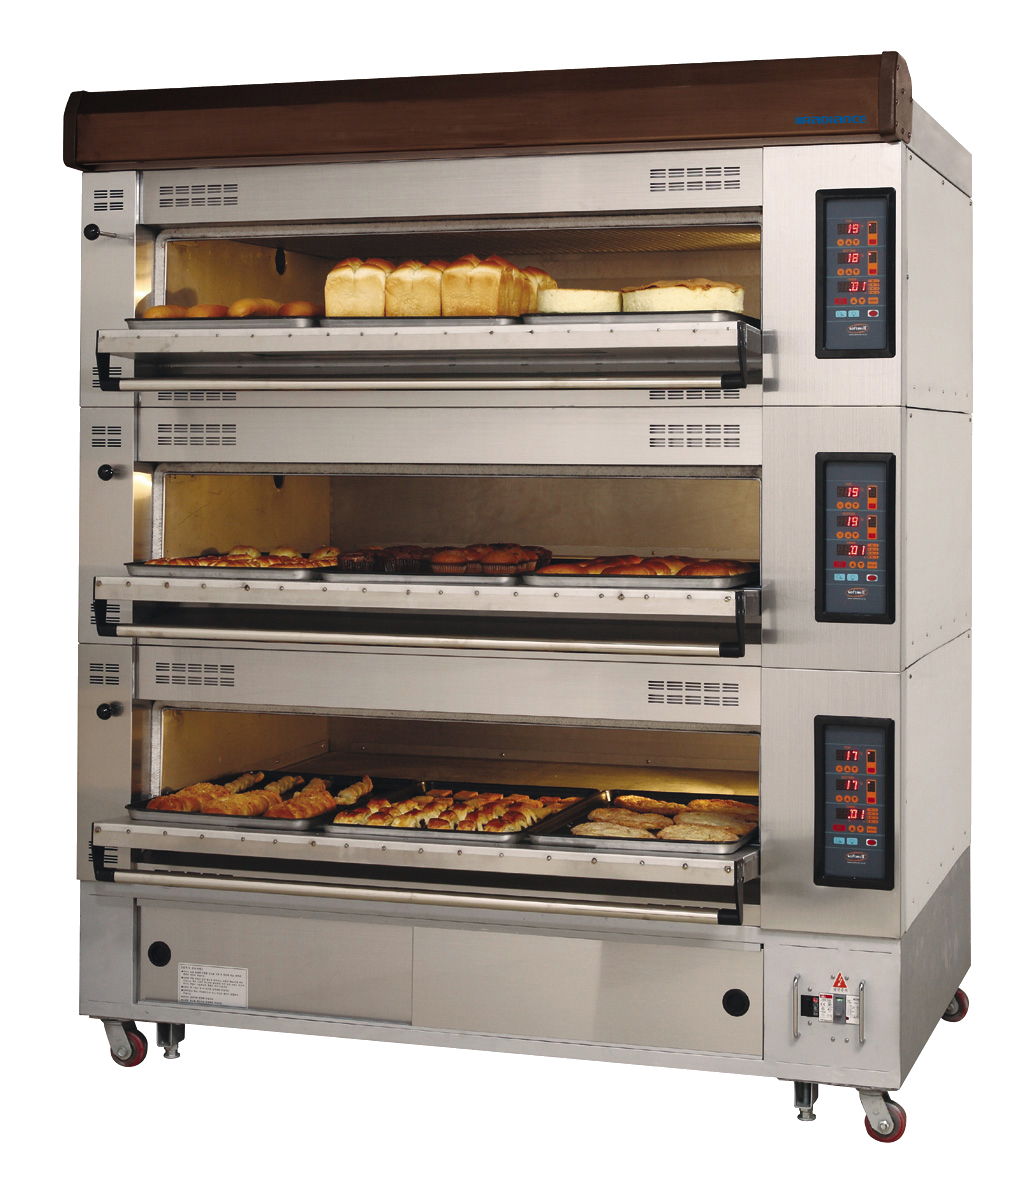 Turbo Air RBDO-23 oven, deck-type, electric